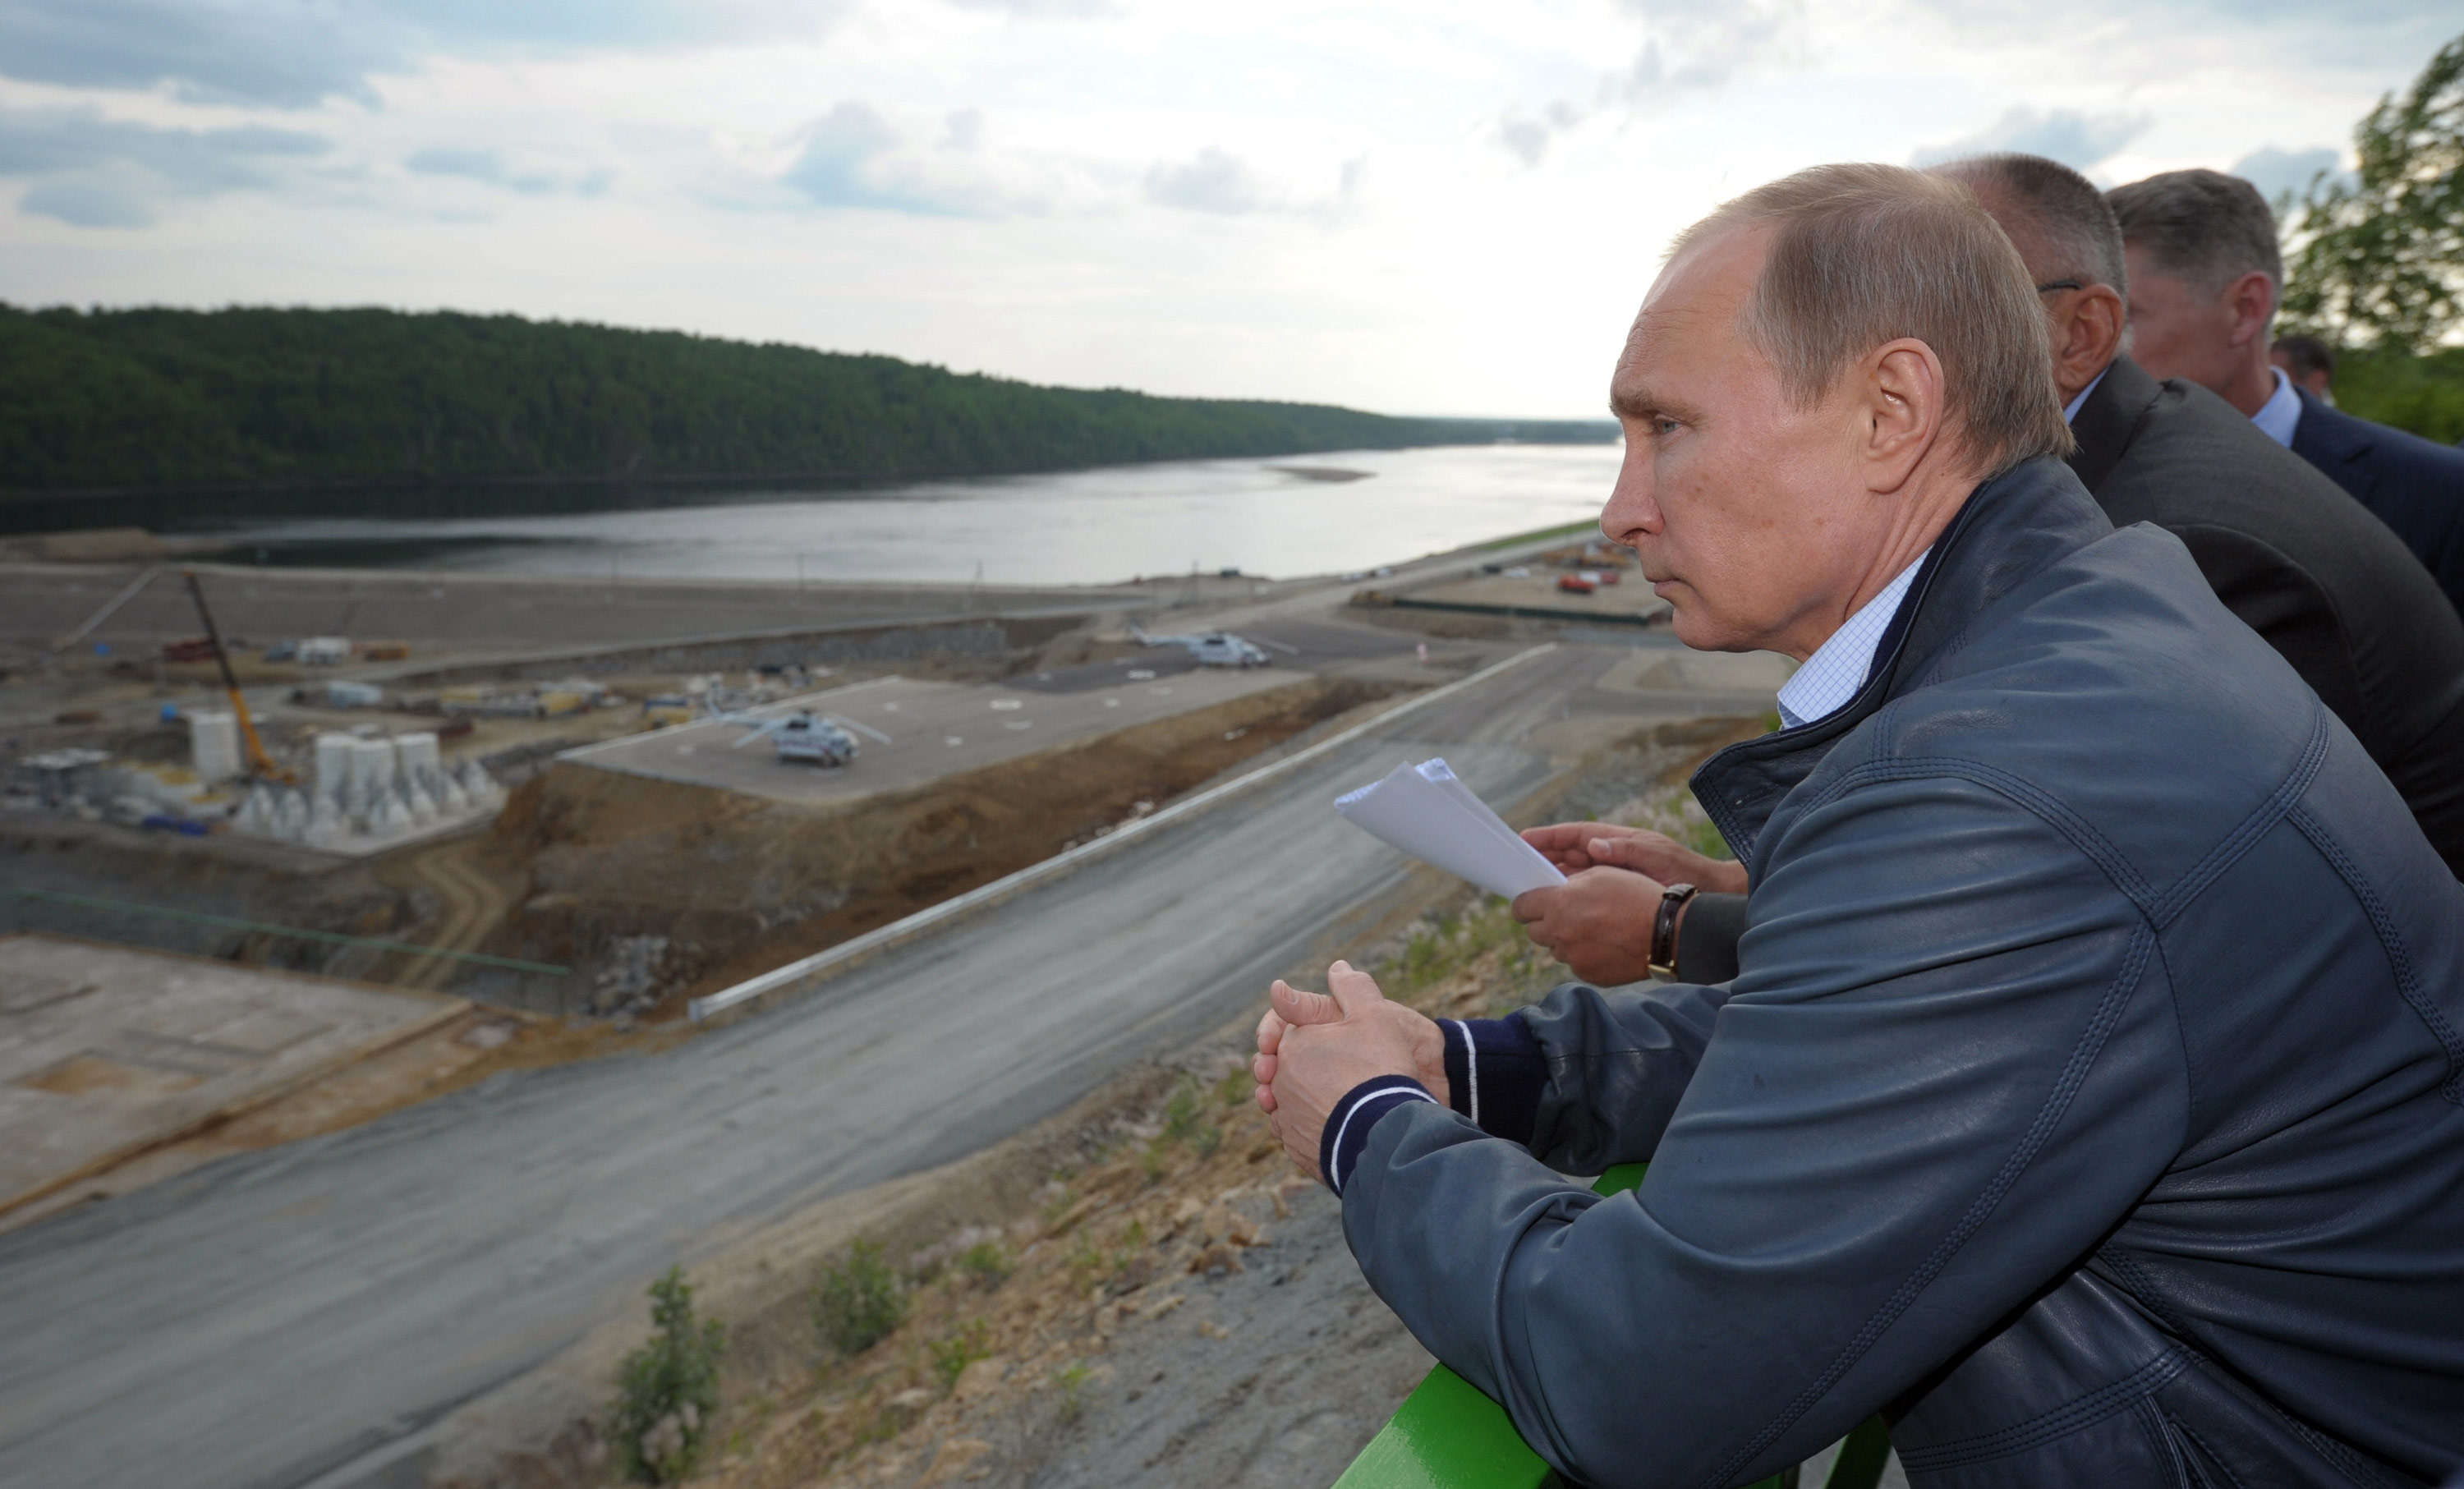 Russian president Vladimir Putin surveys the construction of a hydroelectric facility in Eastern Russia.